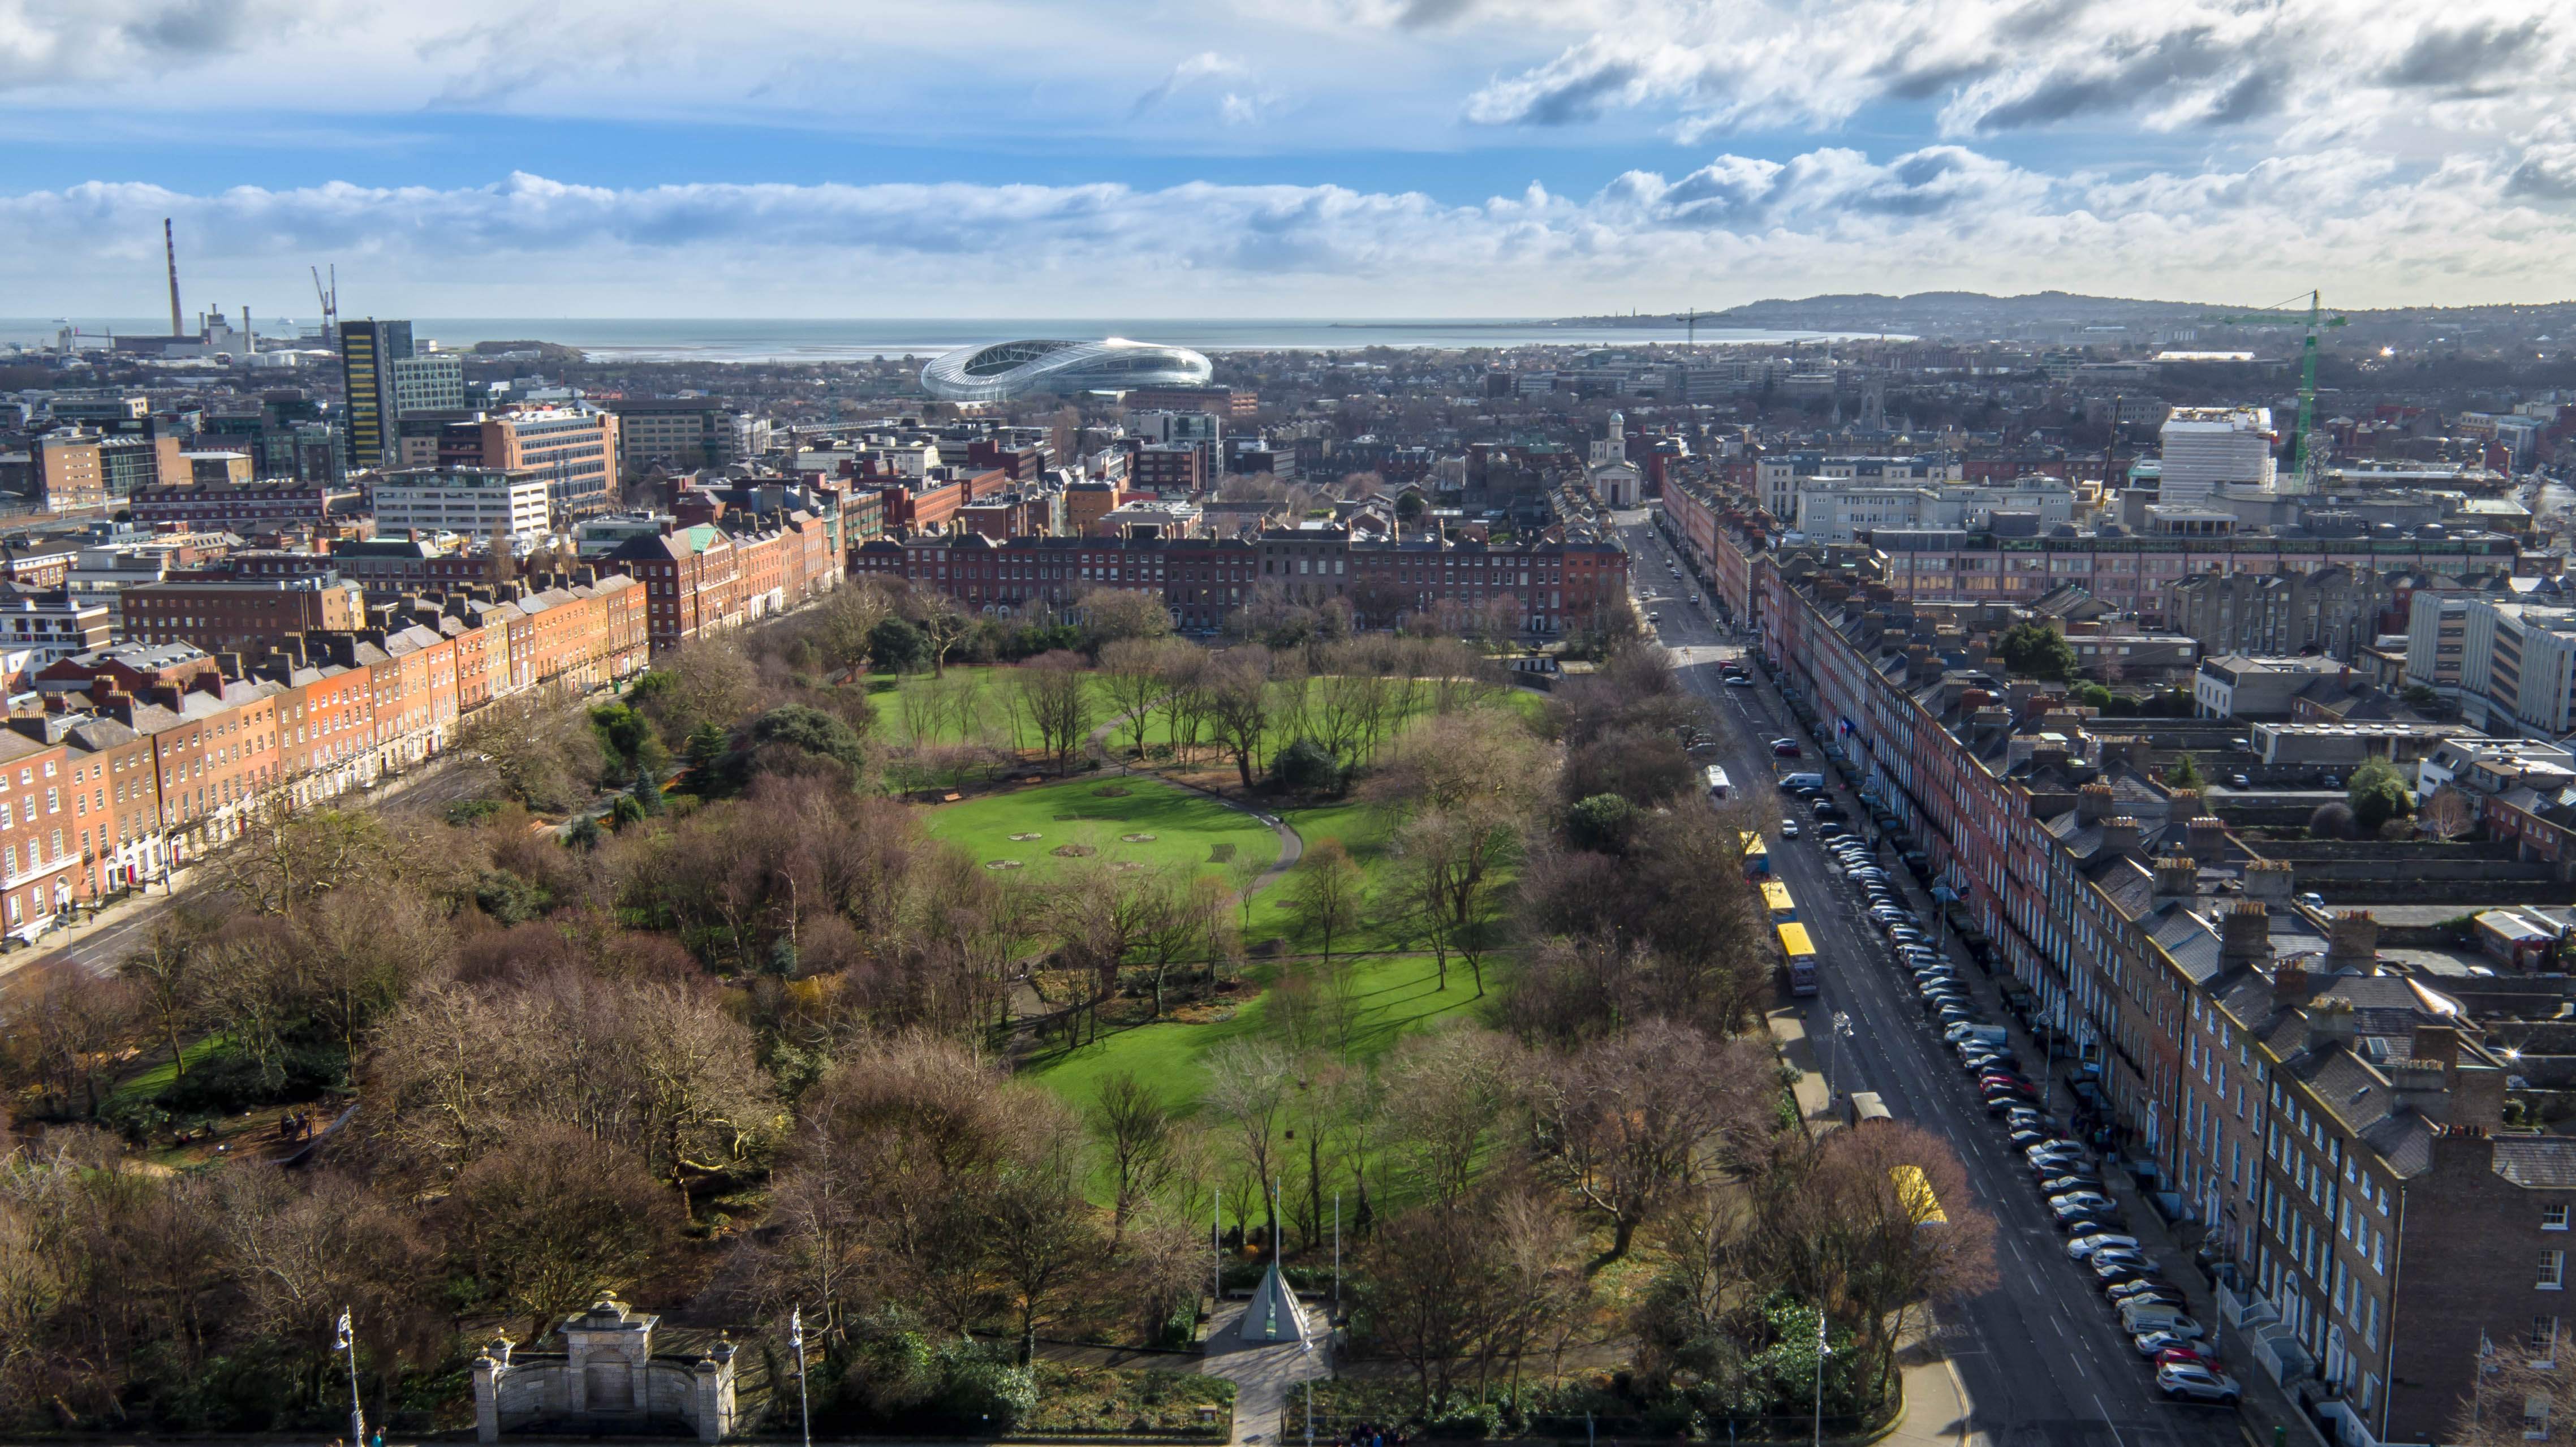 Dublin City - Merrion Square